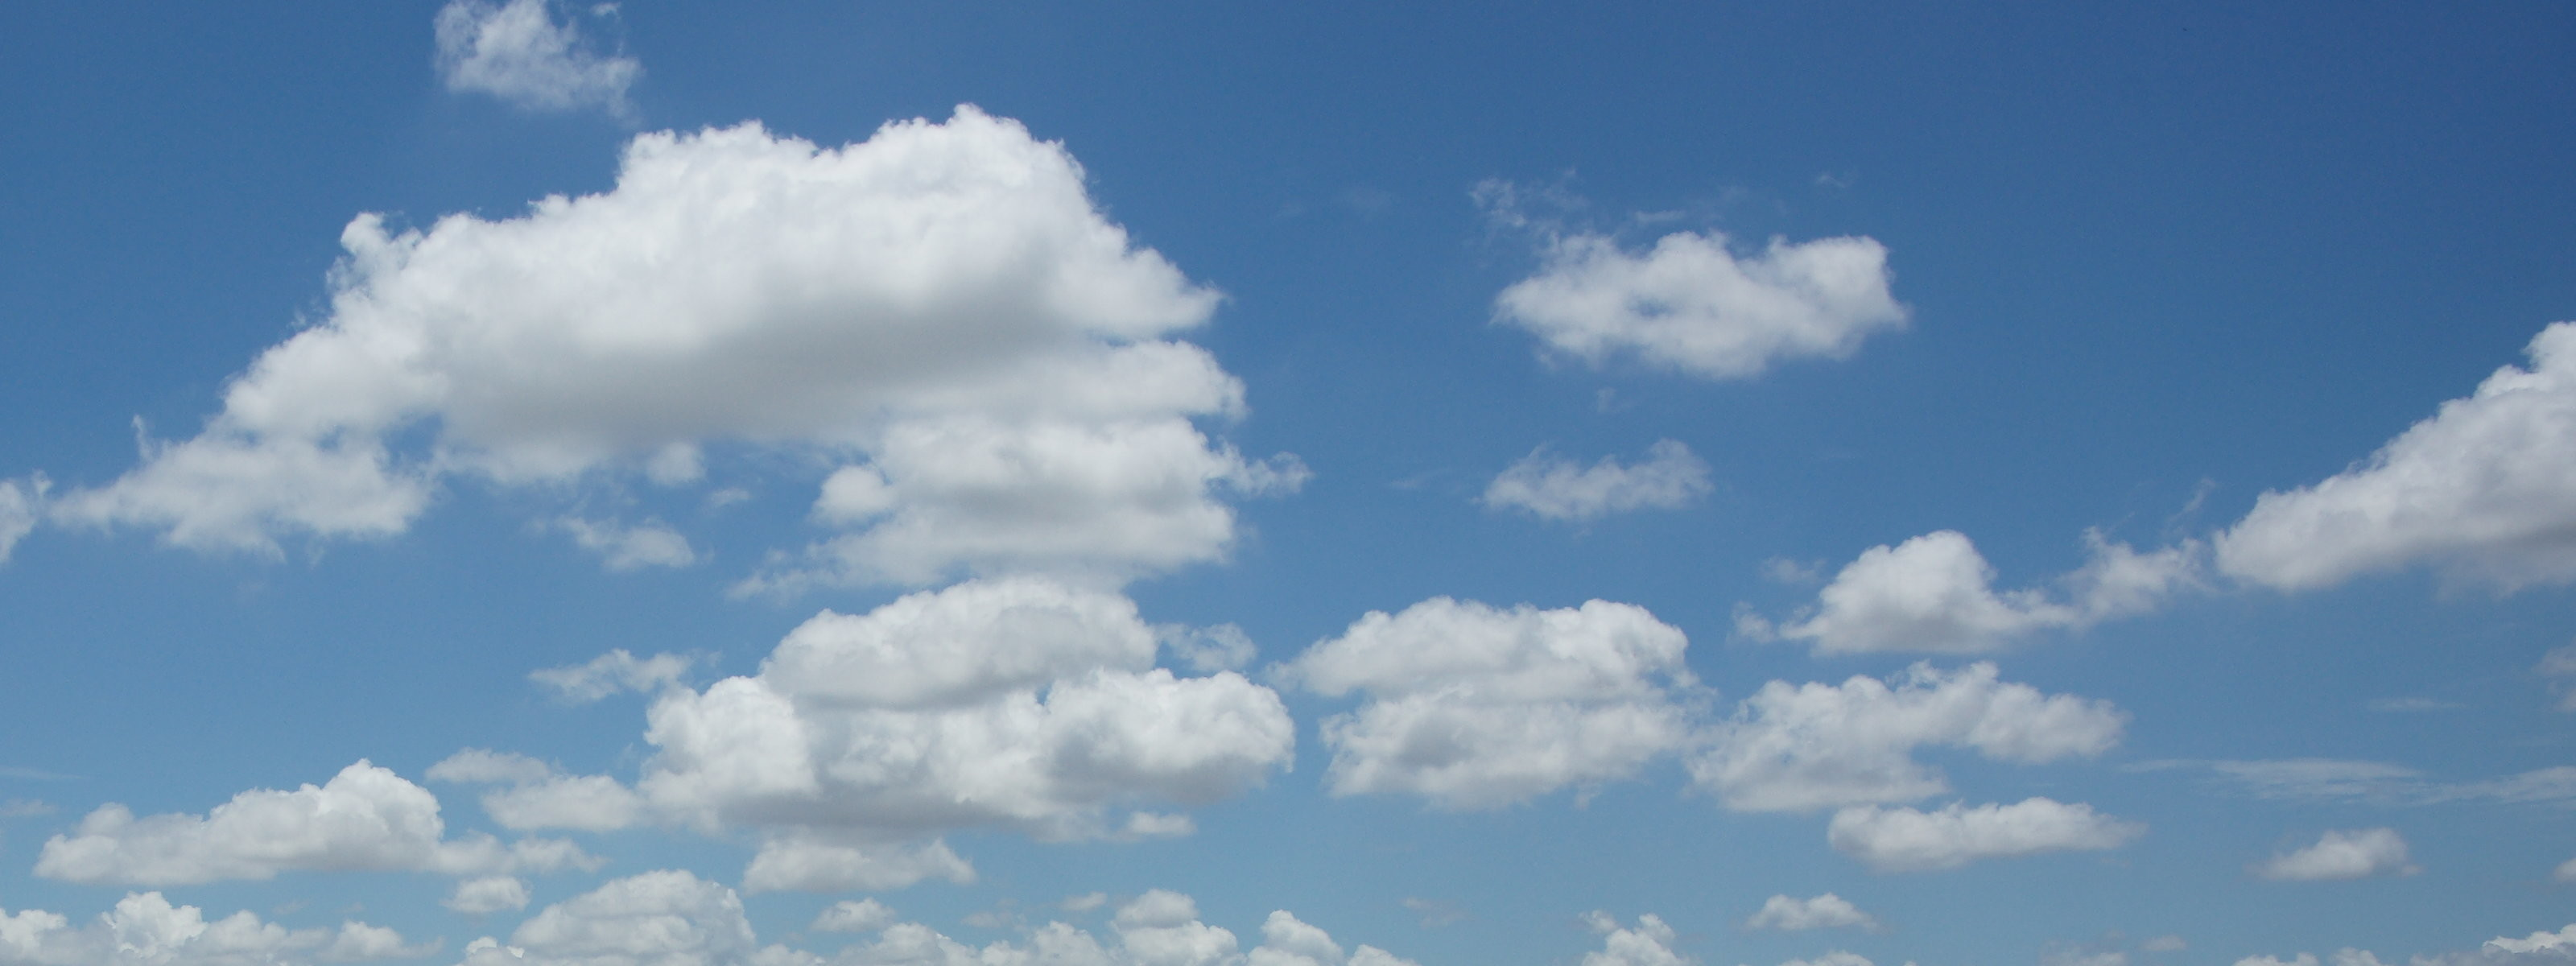 Top Clouds And Blue Sky Wallpapers